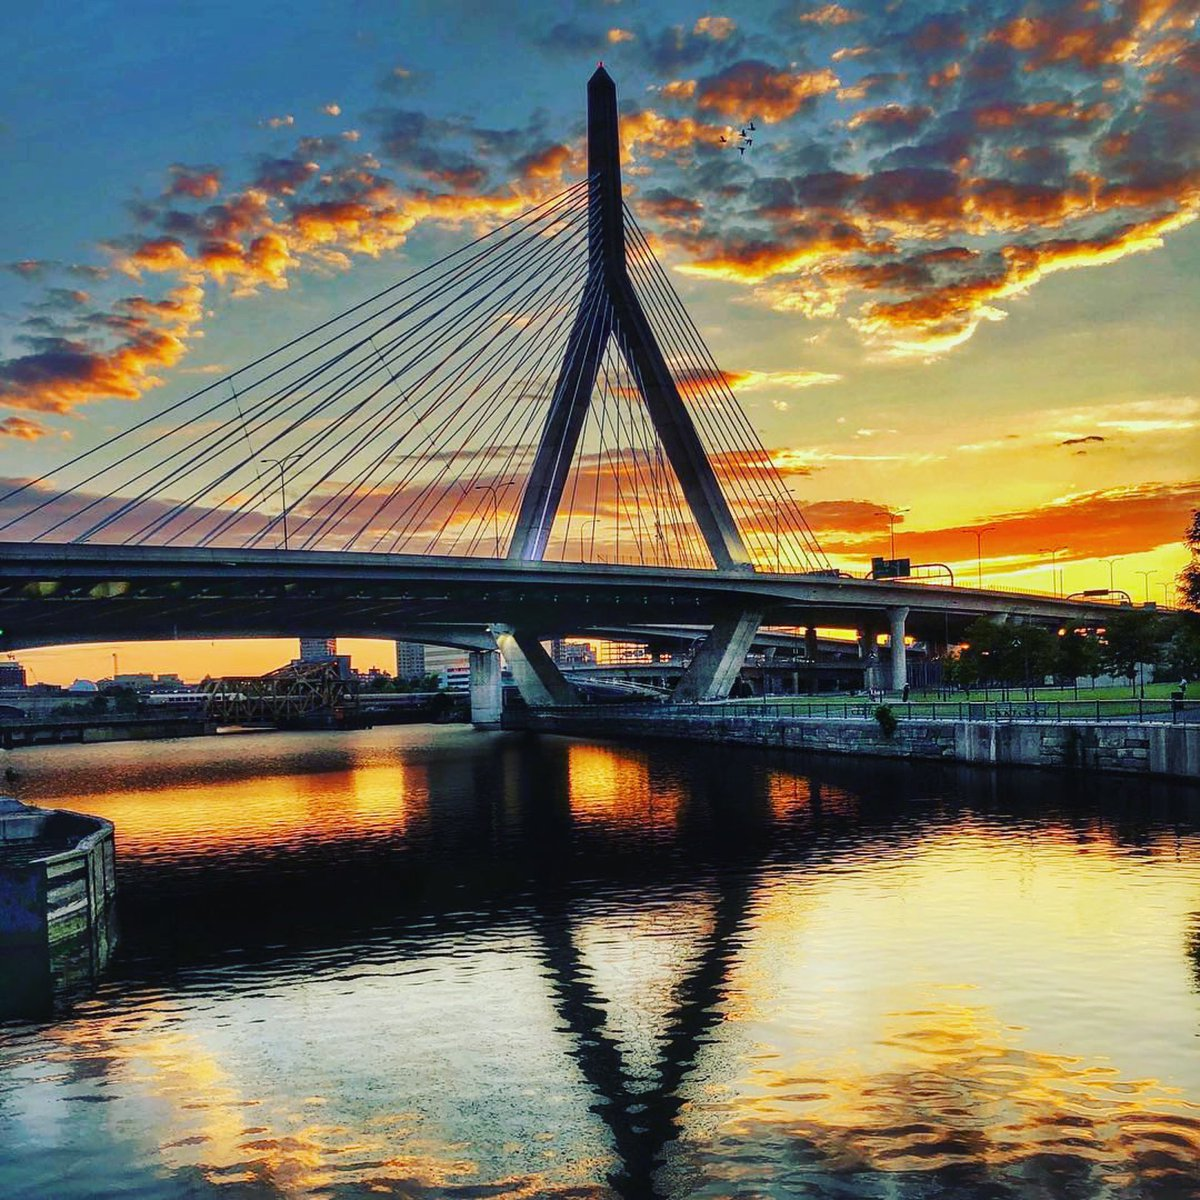 RT @EvanKirstel: #boston #mondaymorning https://t.co/w7pXHjymqk